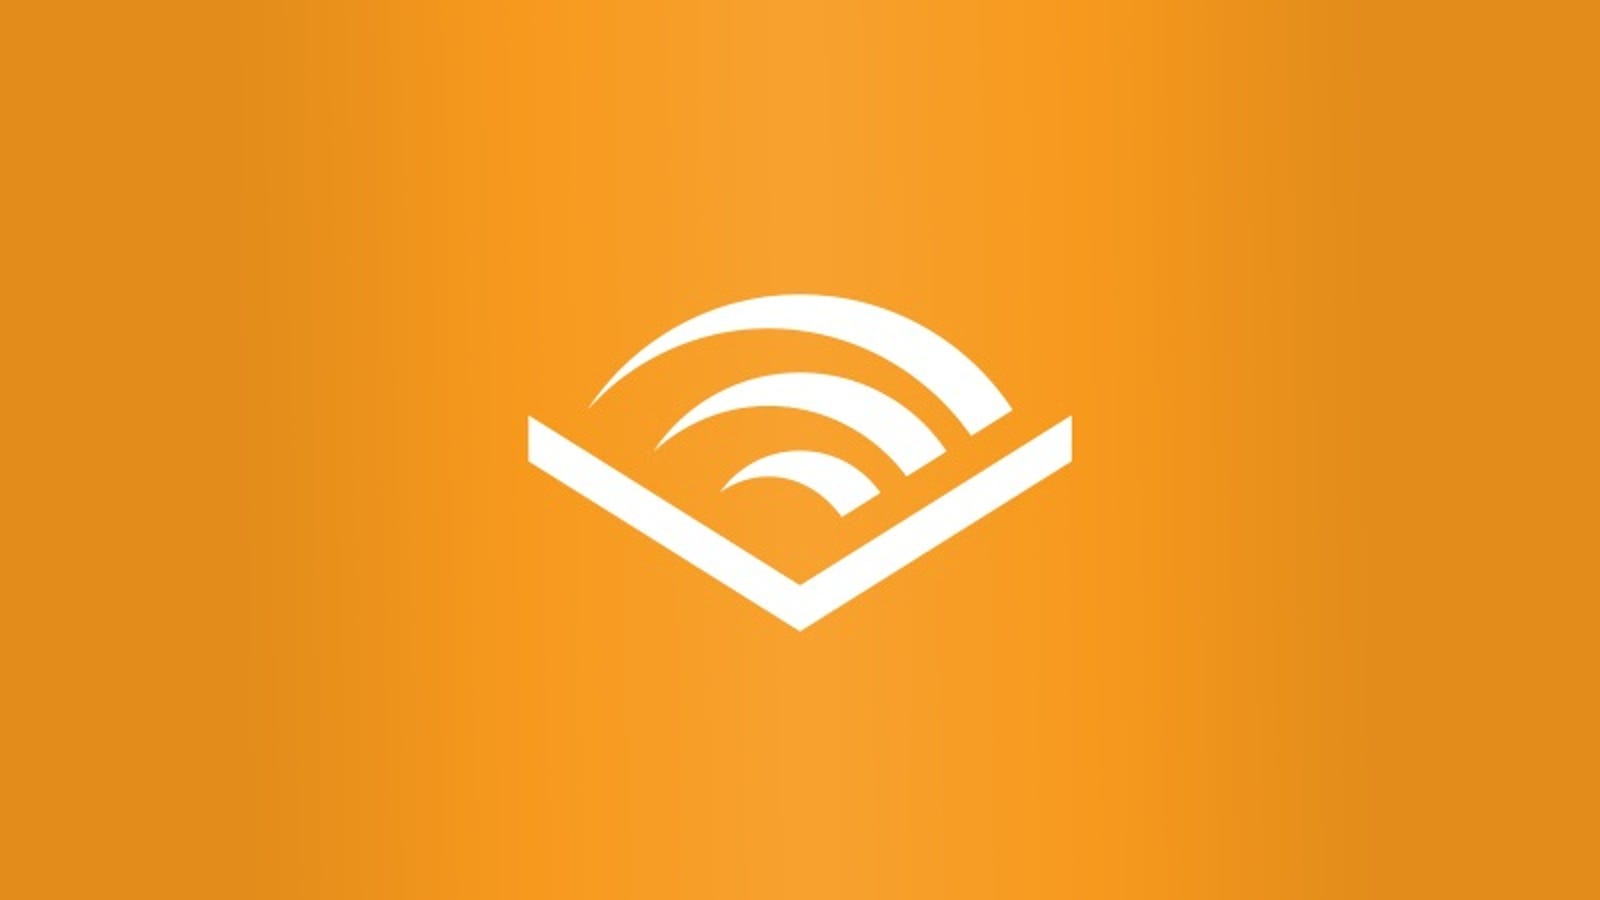 Get A 50 Discount On Audible For Three Months With This Trick